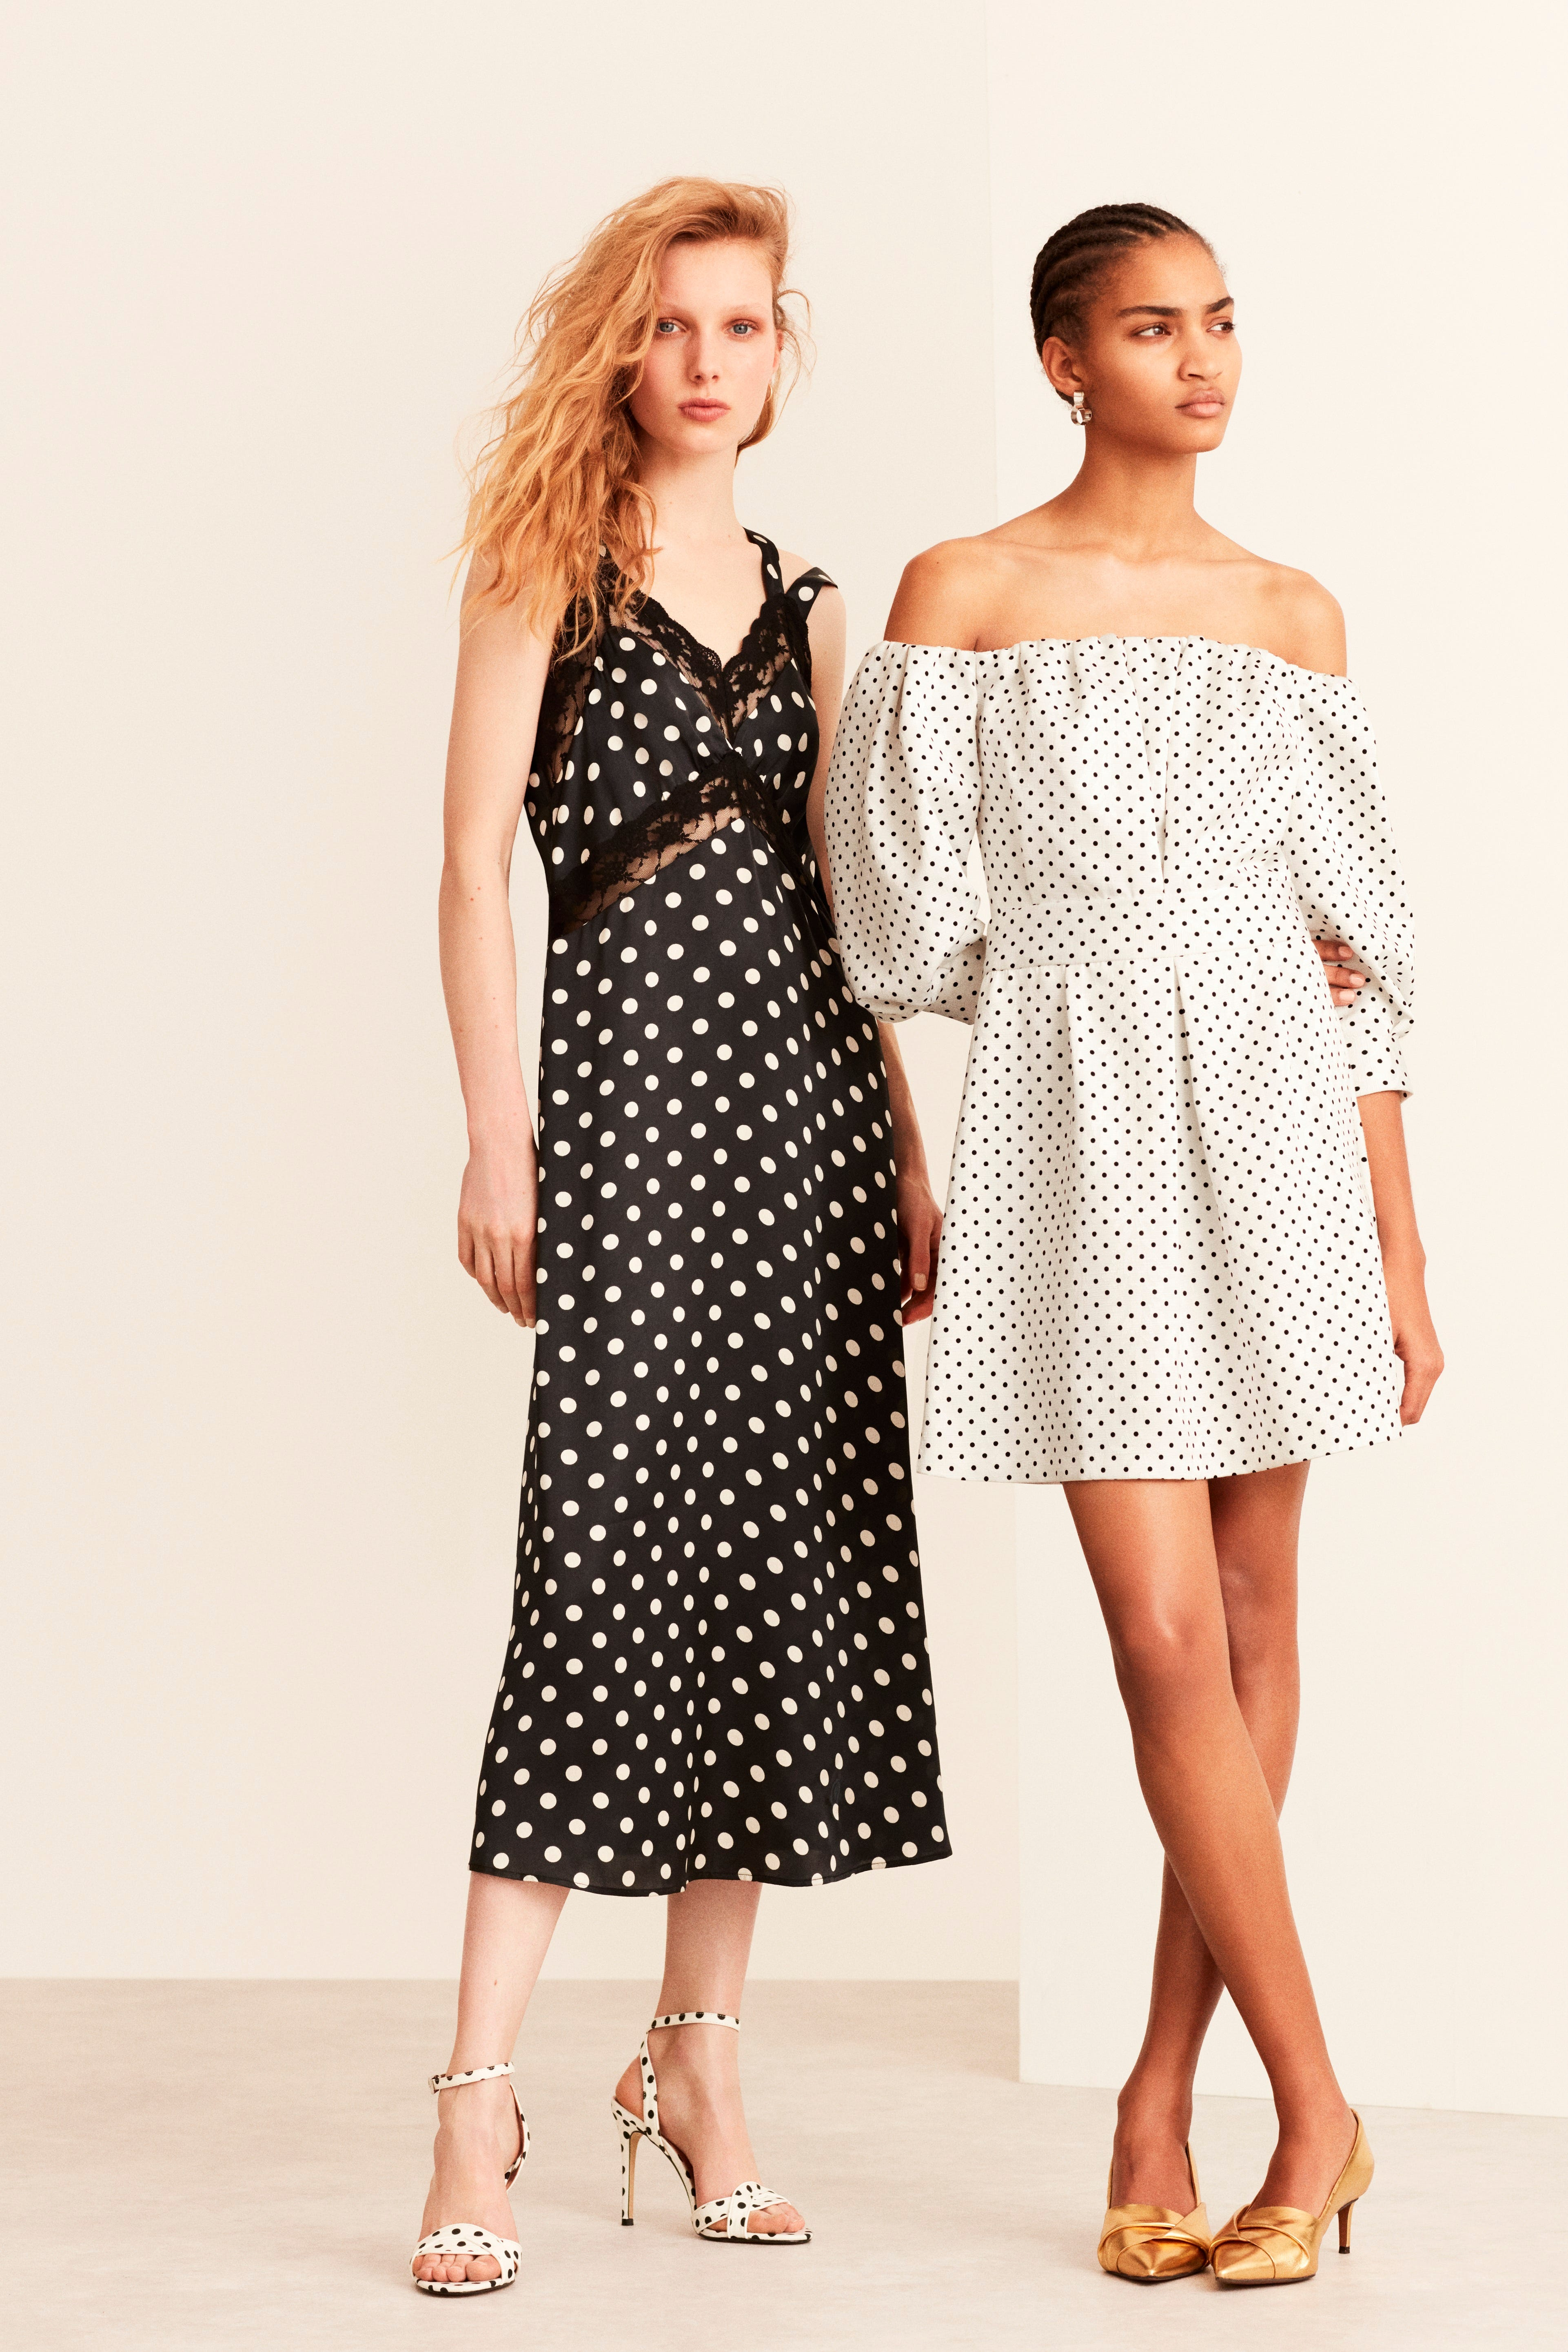 Topshop Just Dropped 17 New Season Dresses